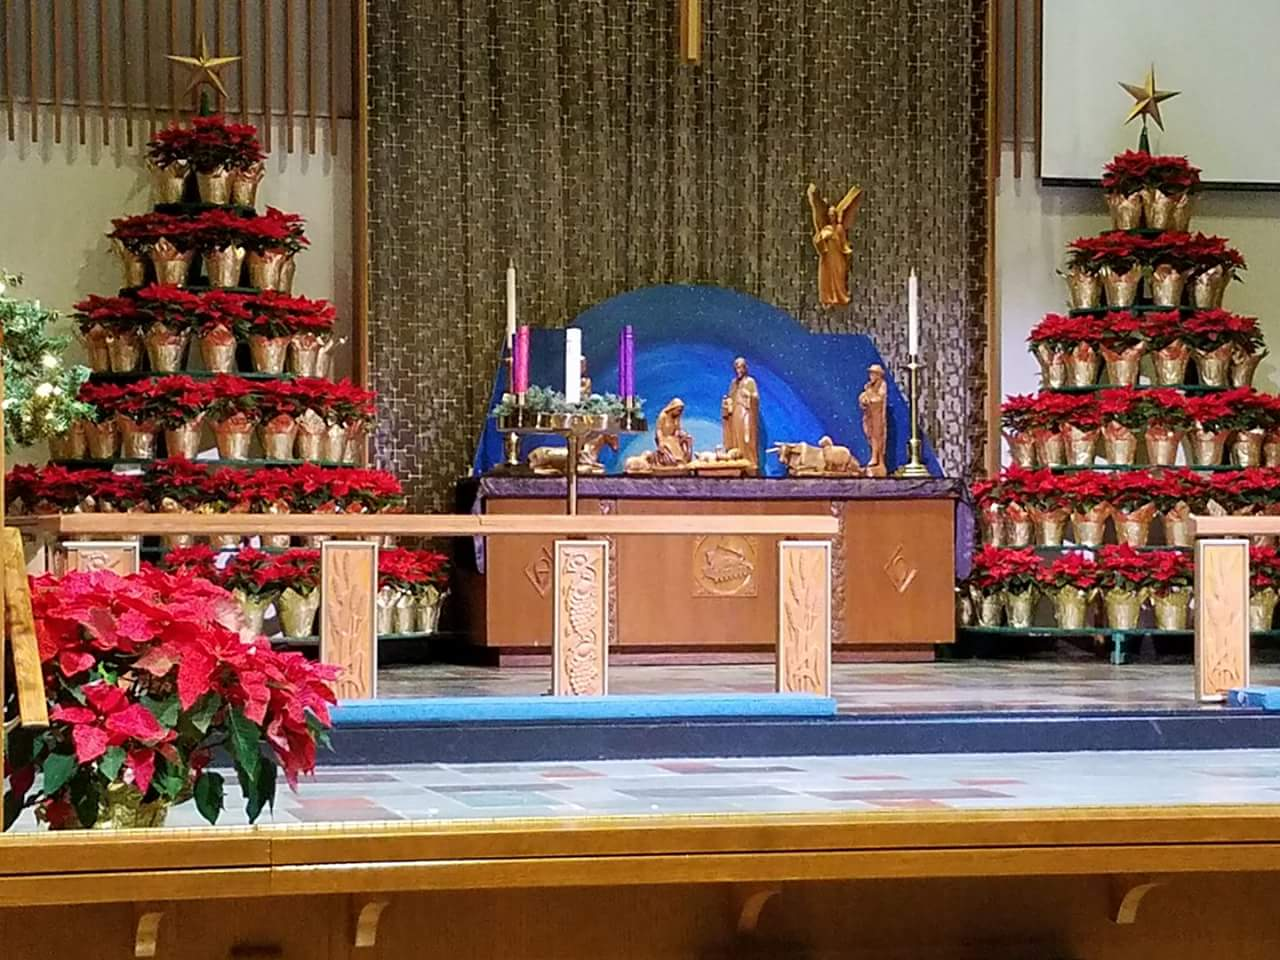 Nativity Sanctuary Decorations at Christmas Time